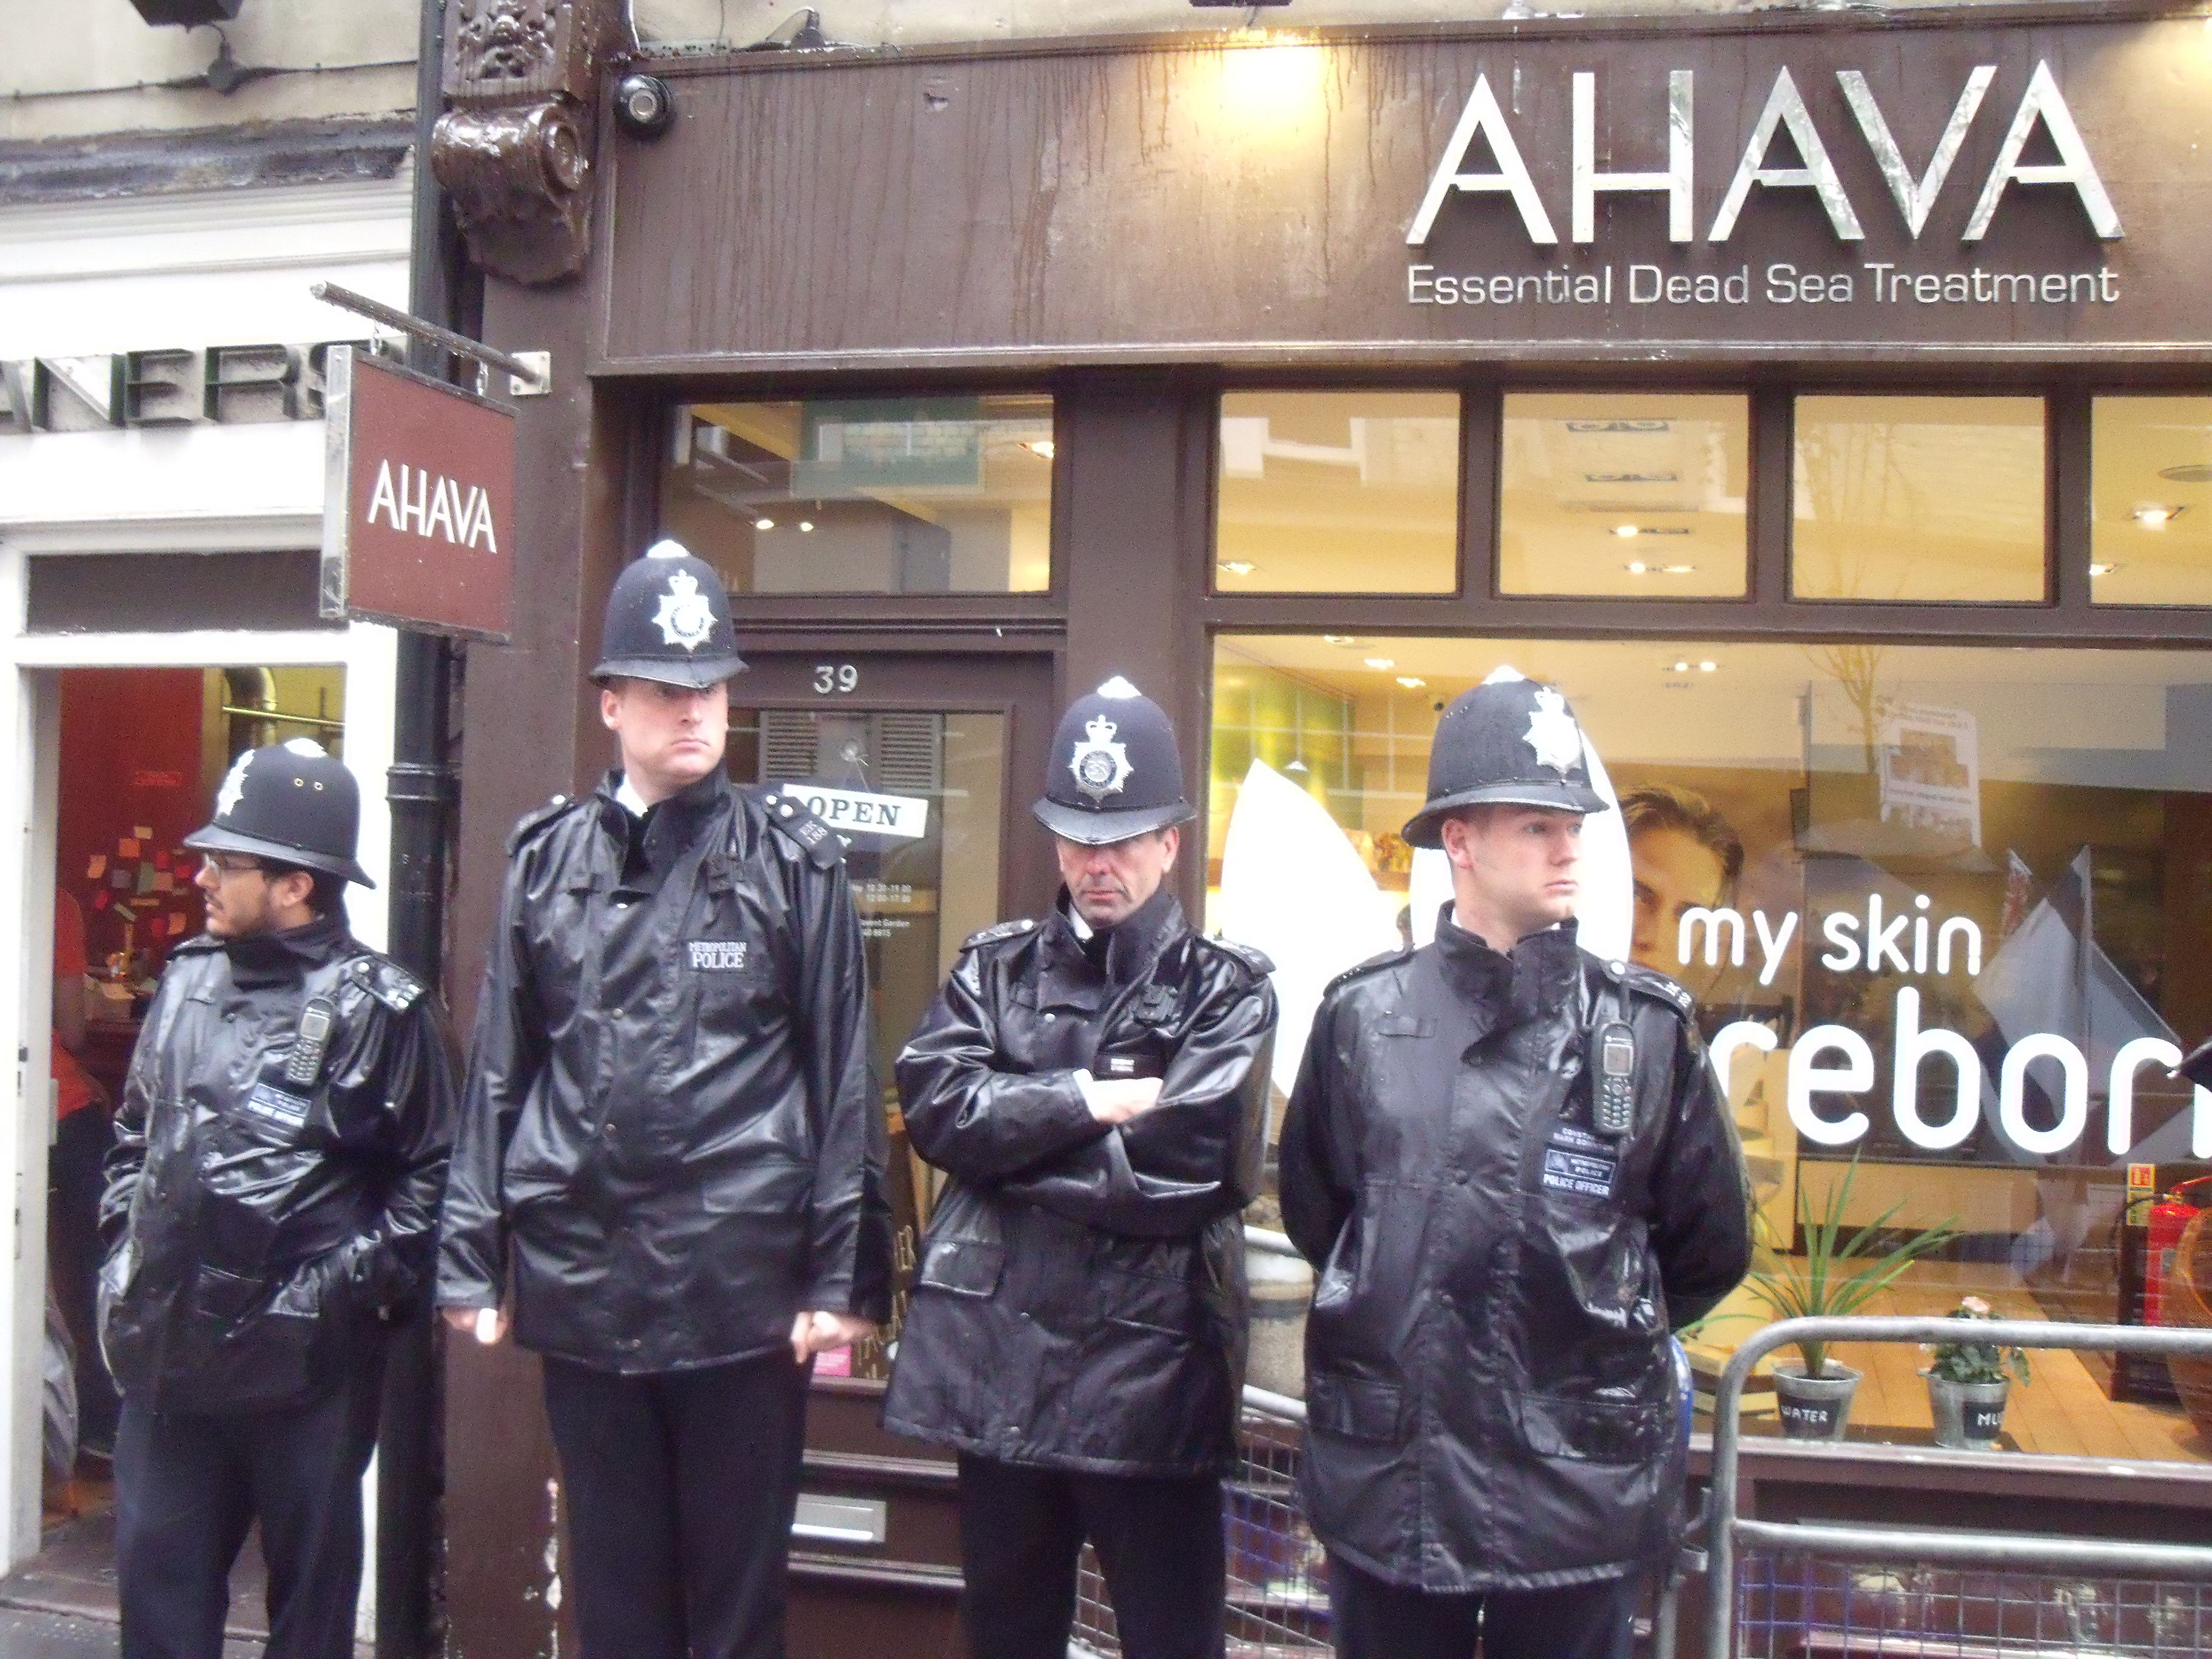 Protests drive Ahava out of Covent Garden